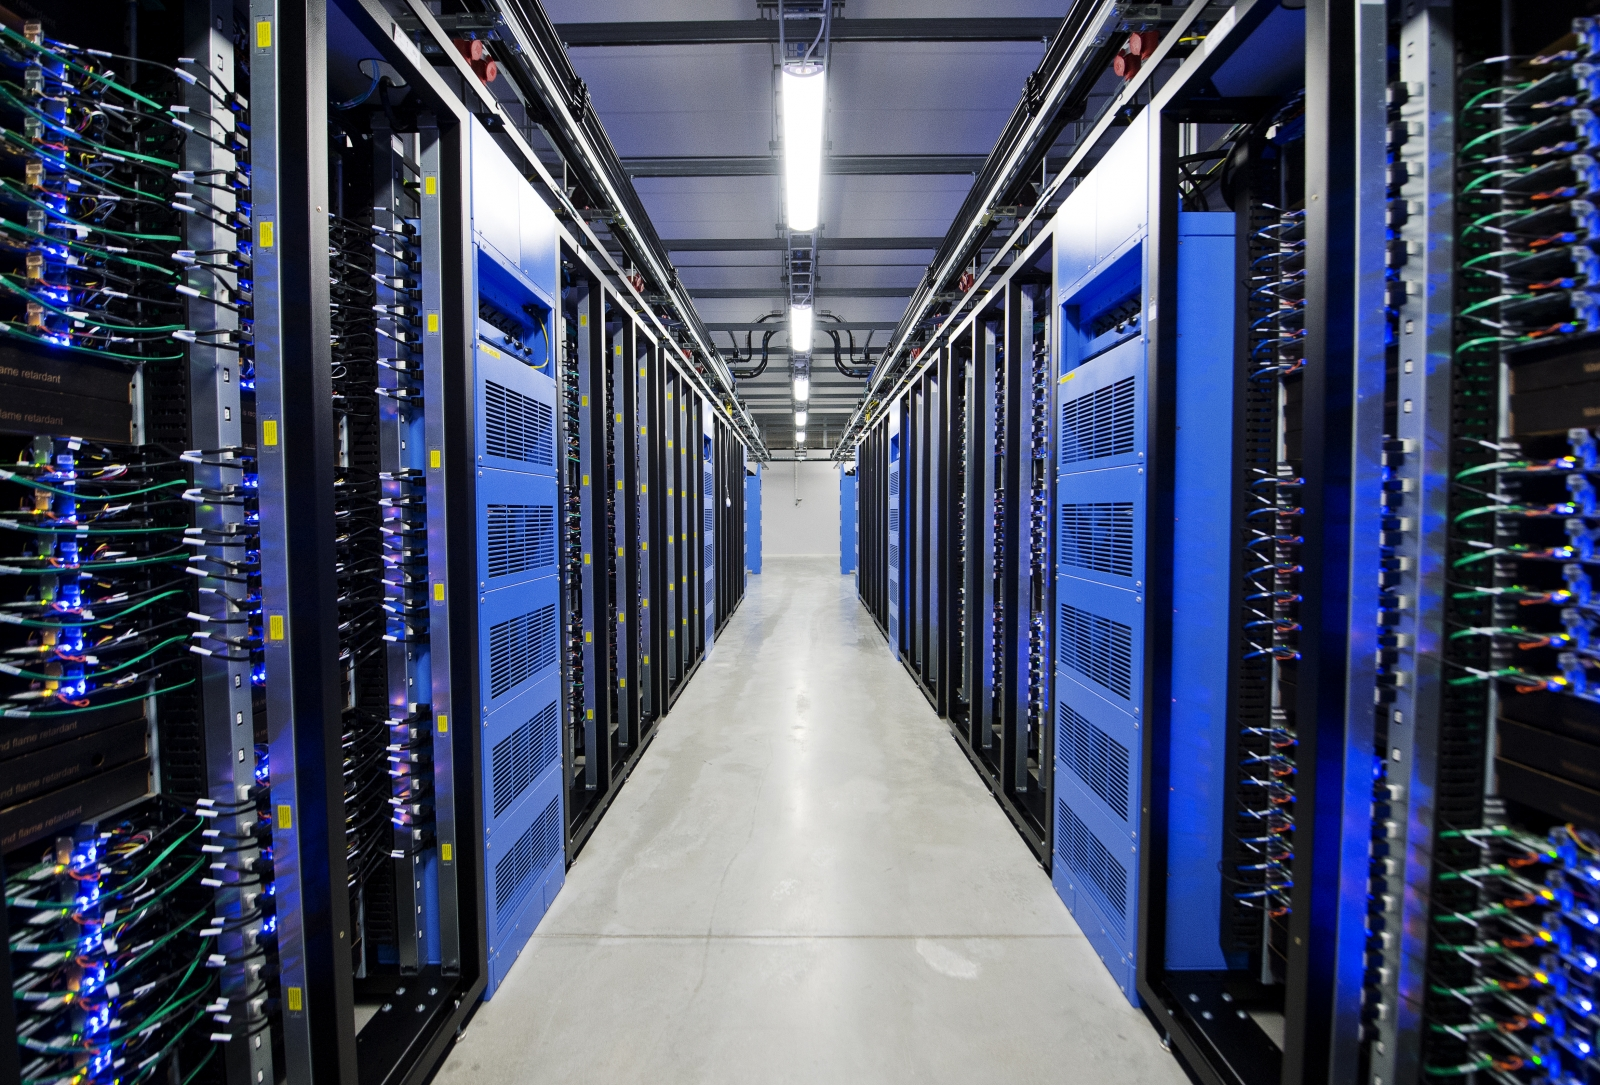 A loud noise shut down ING Bank's main data center in Romania for 10 hours